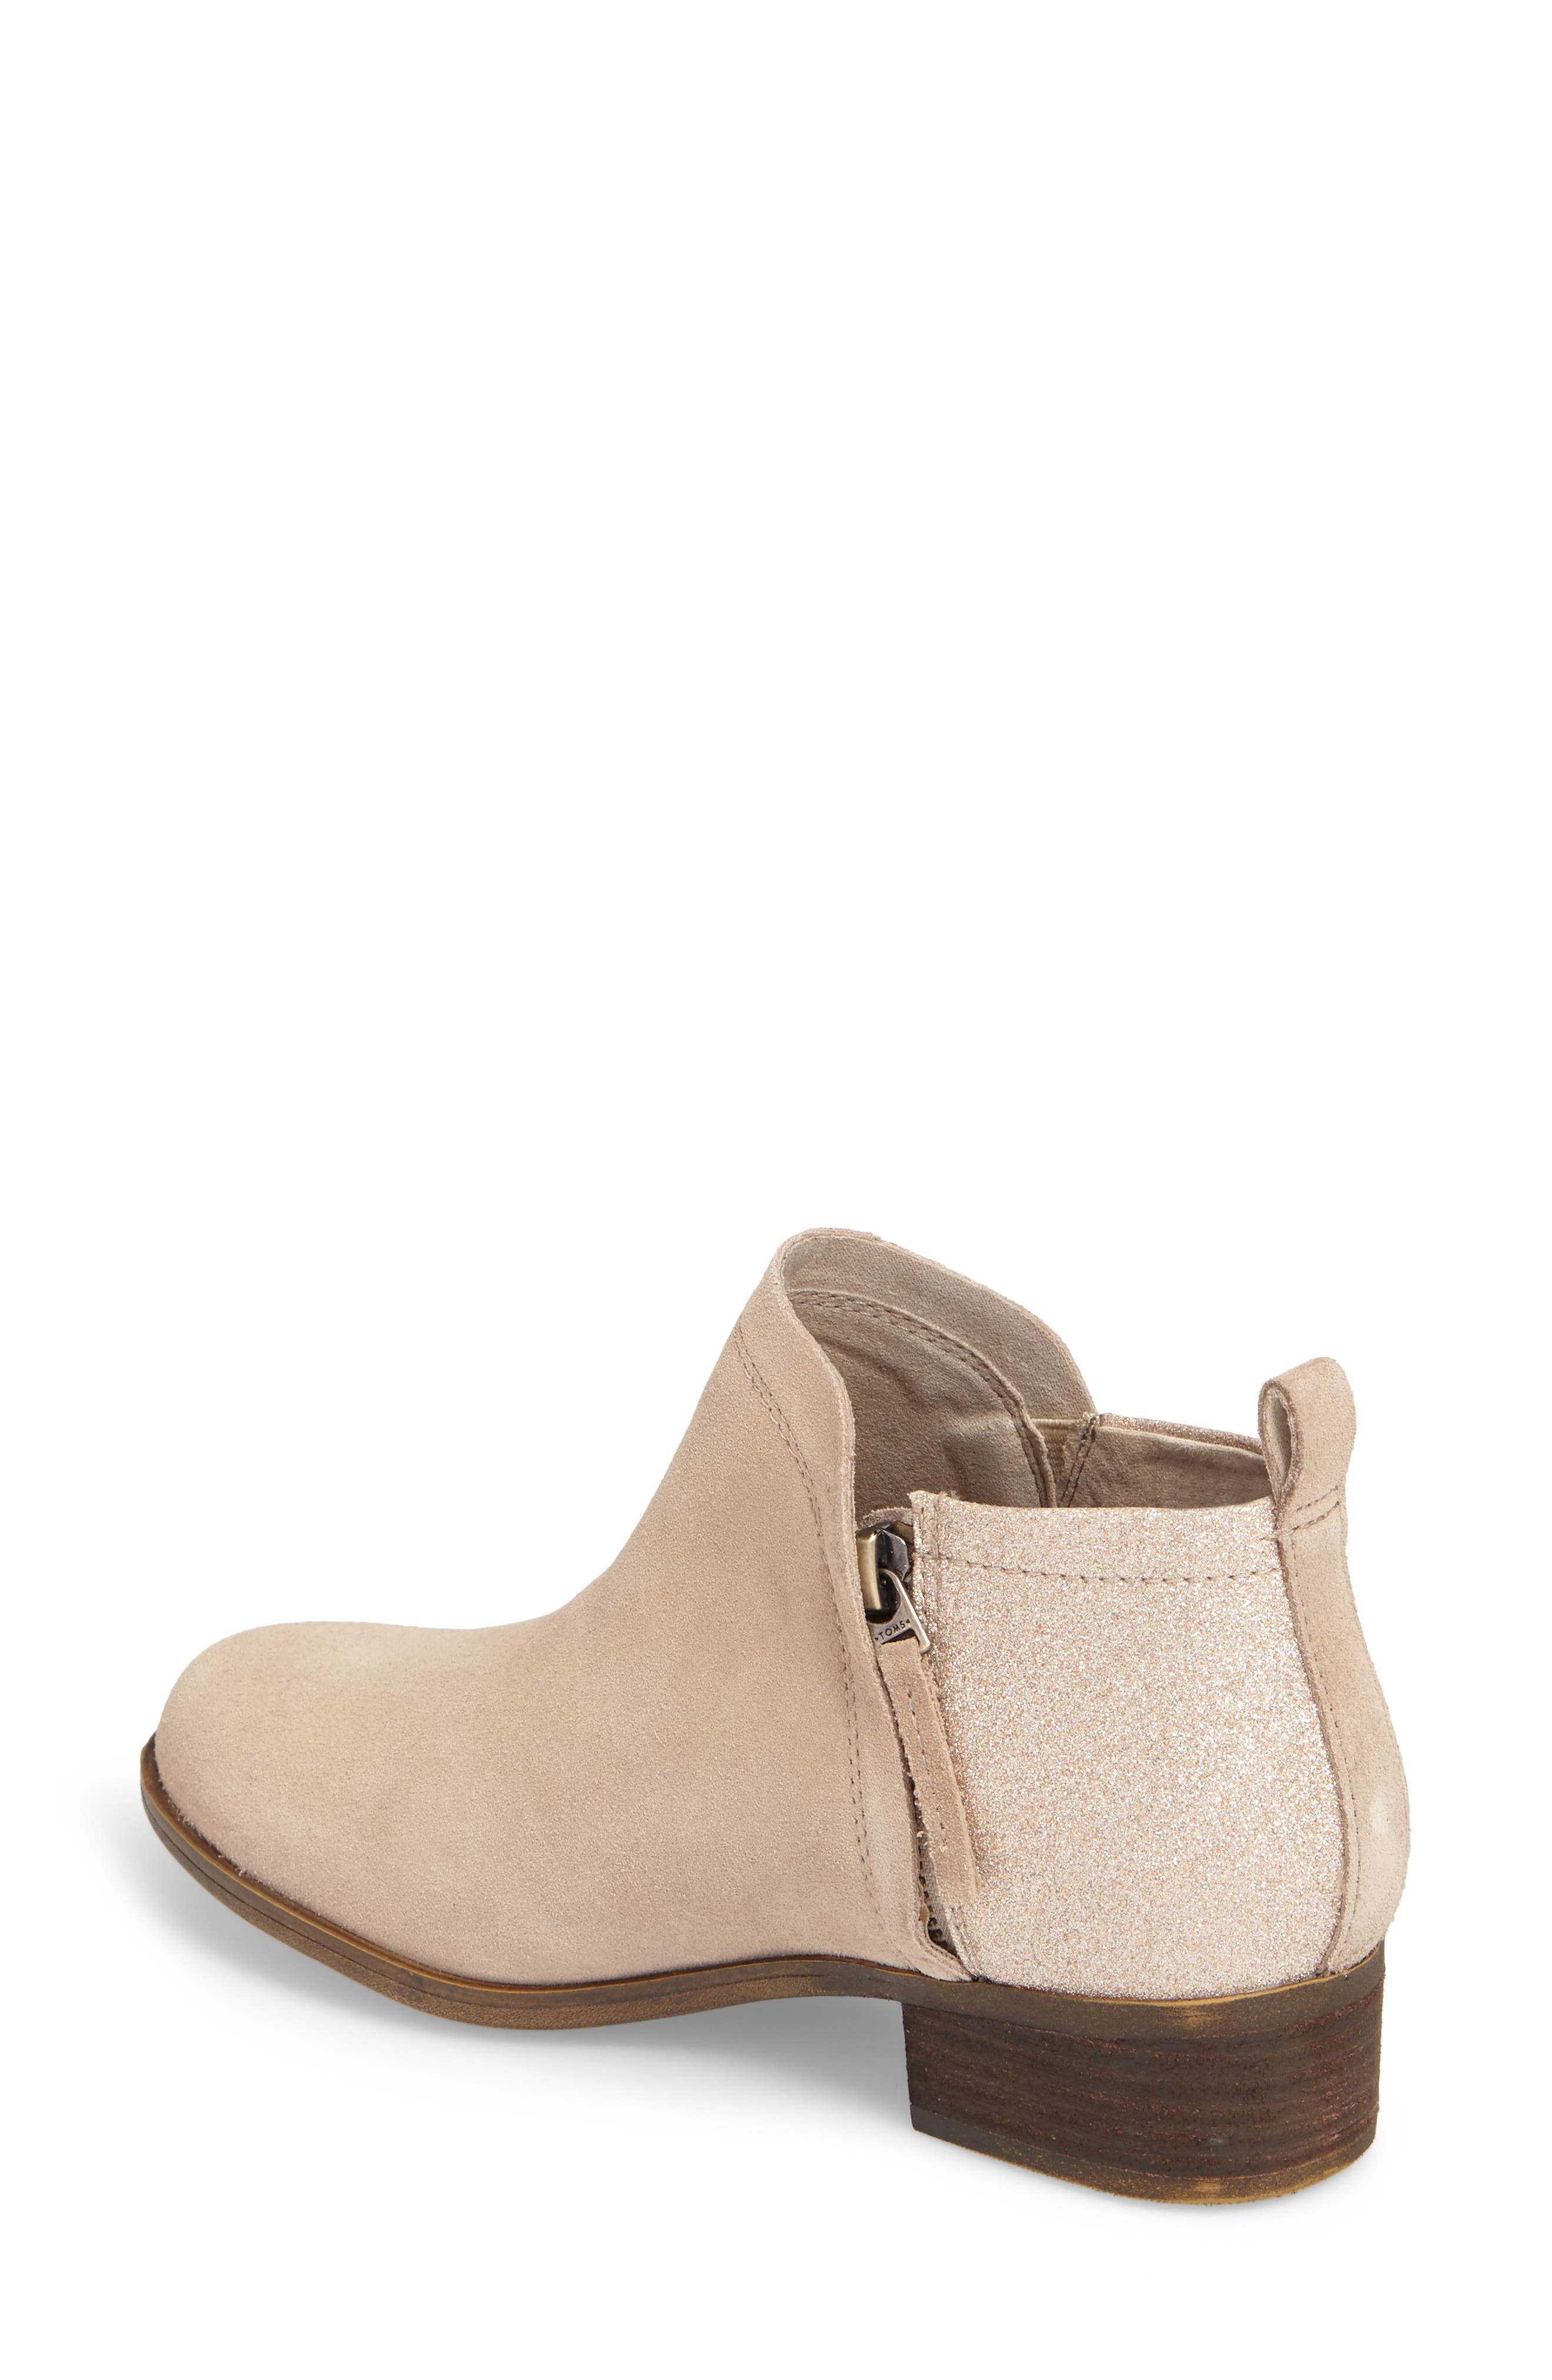 Deia Zip Bootie,                             Alternate thumbnail 15, color,